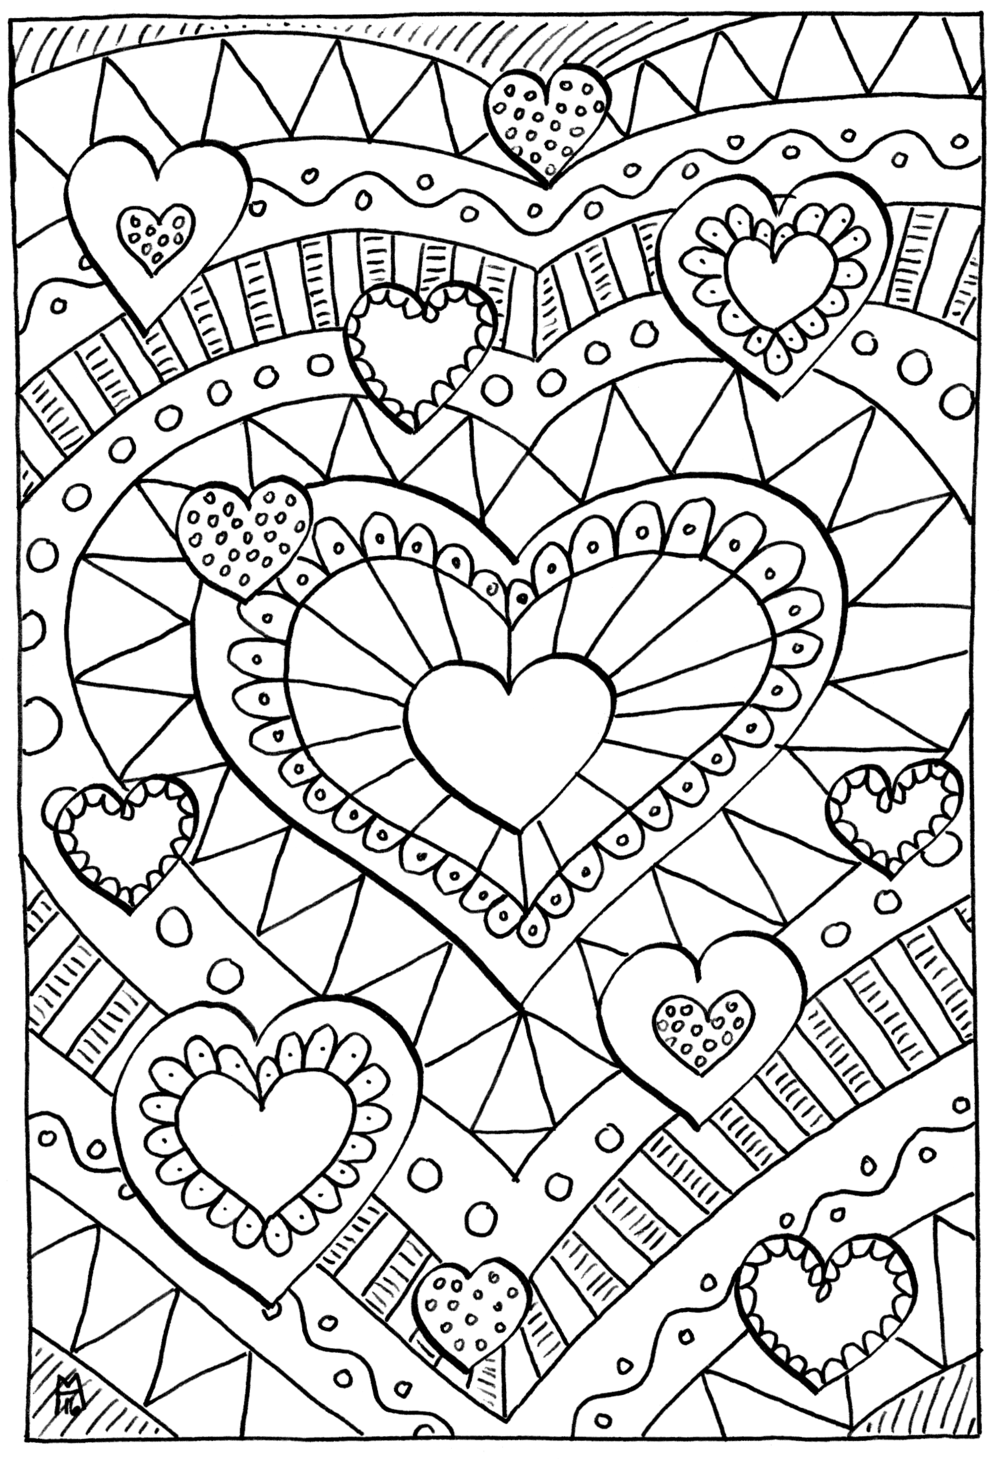 mindware free coloring pages - photo#32